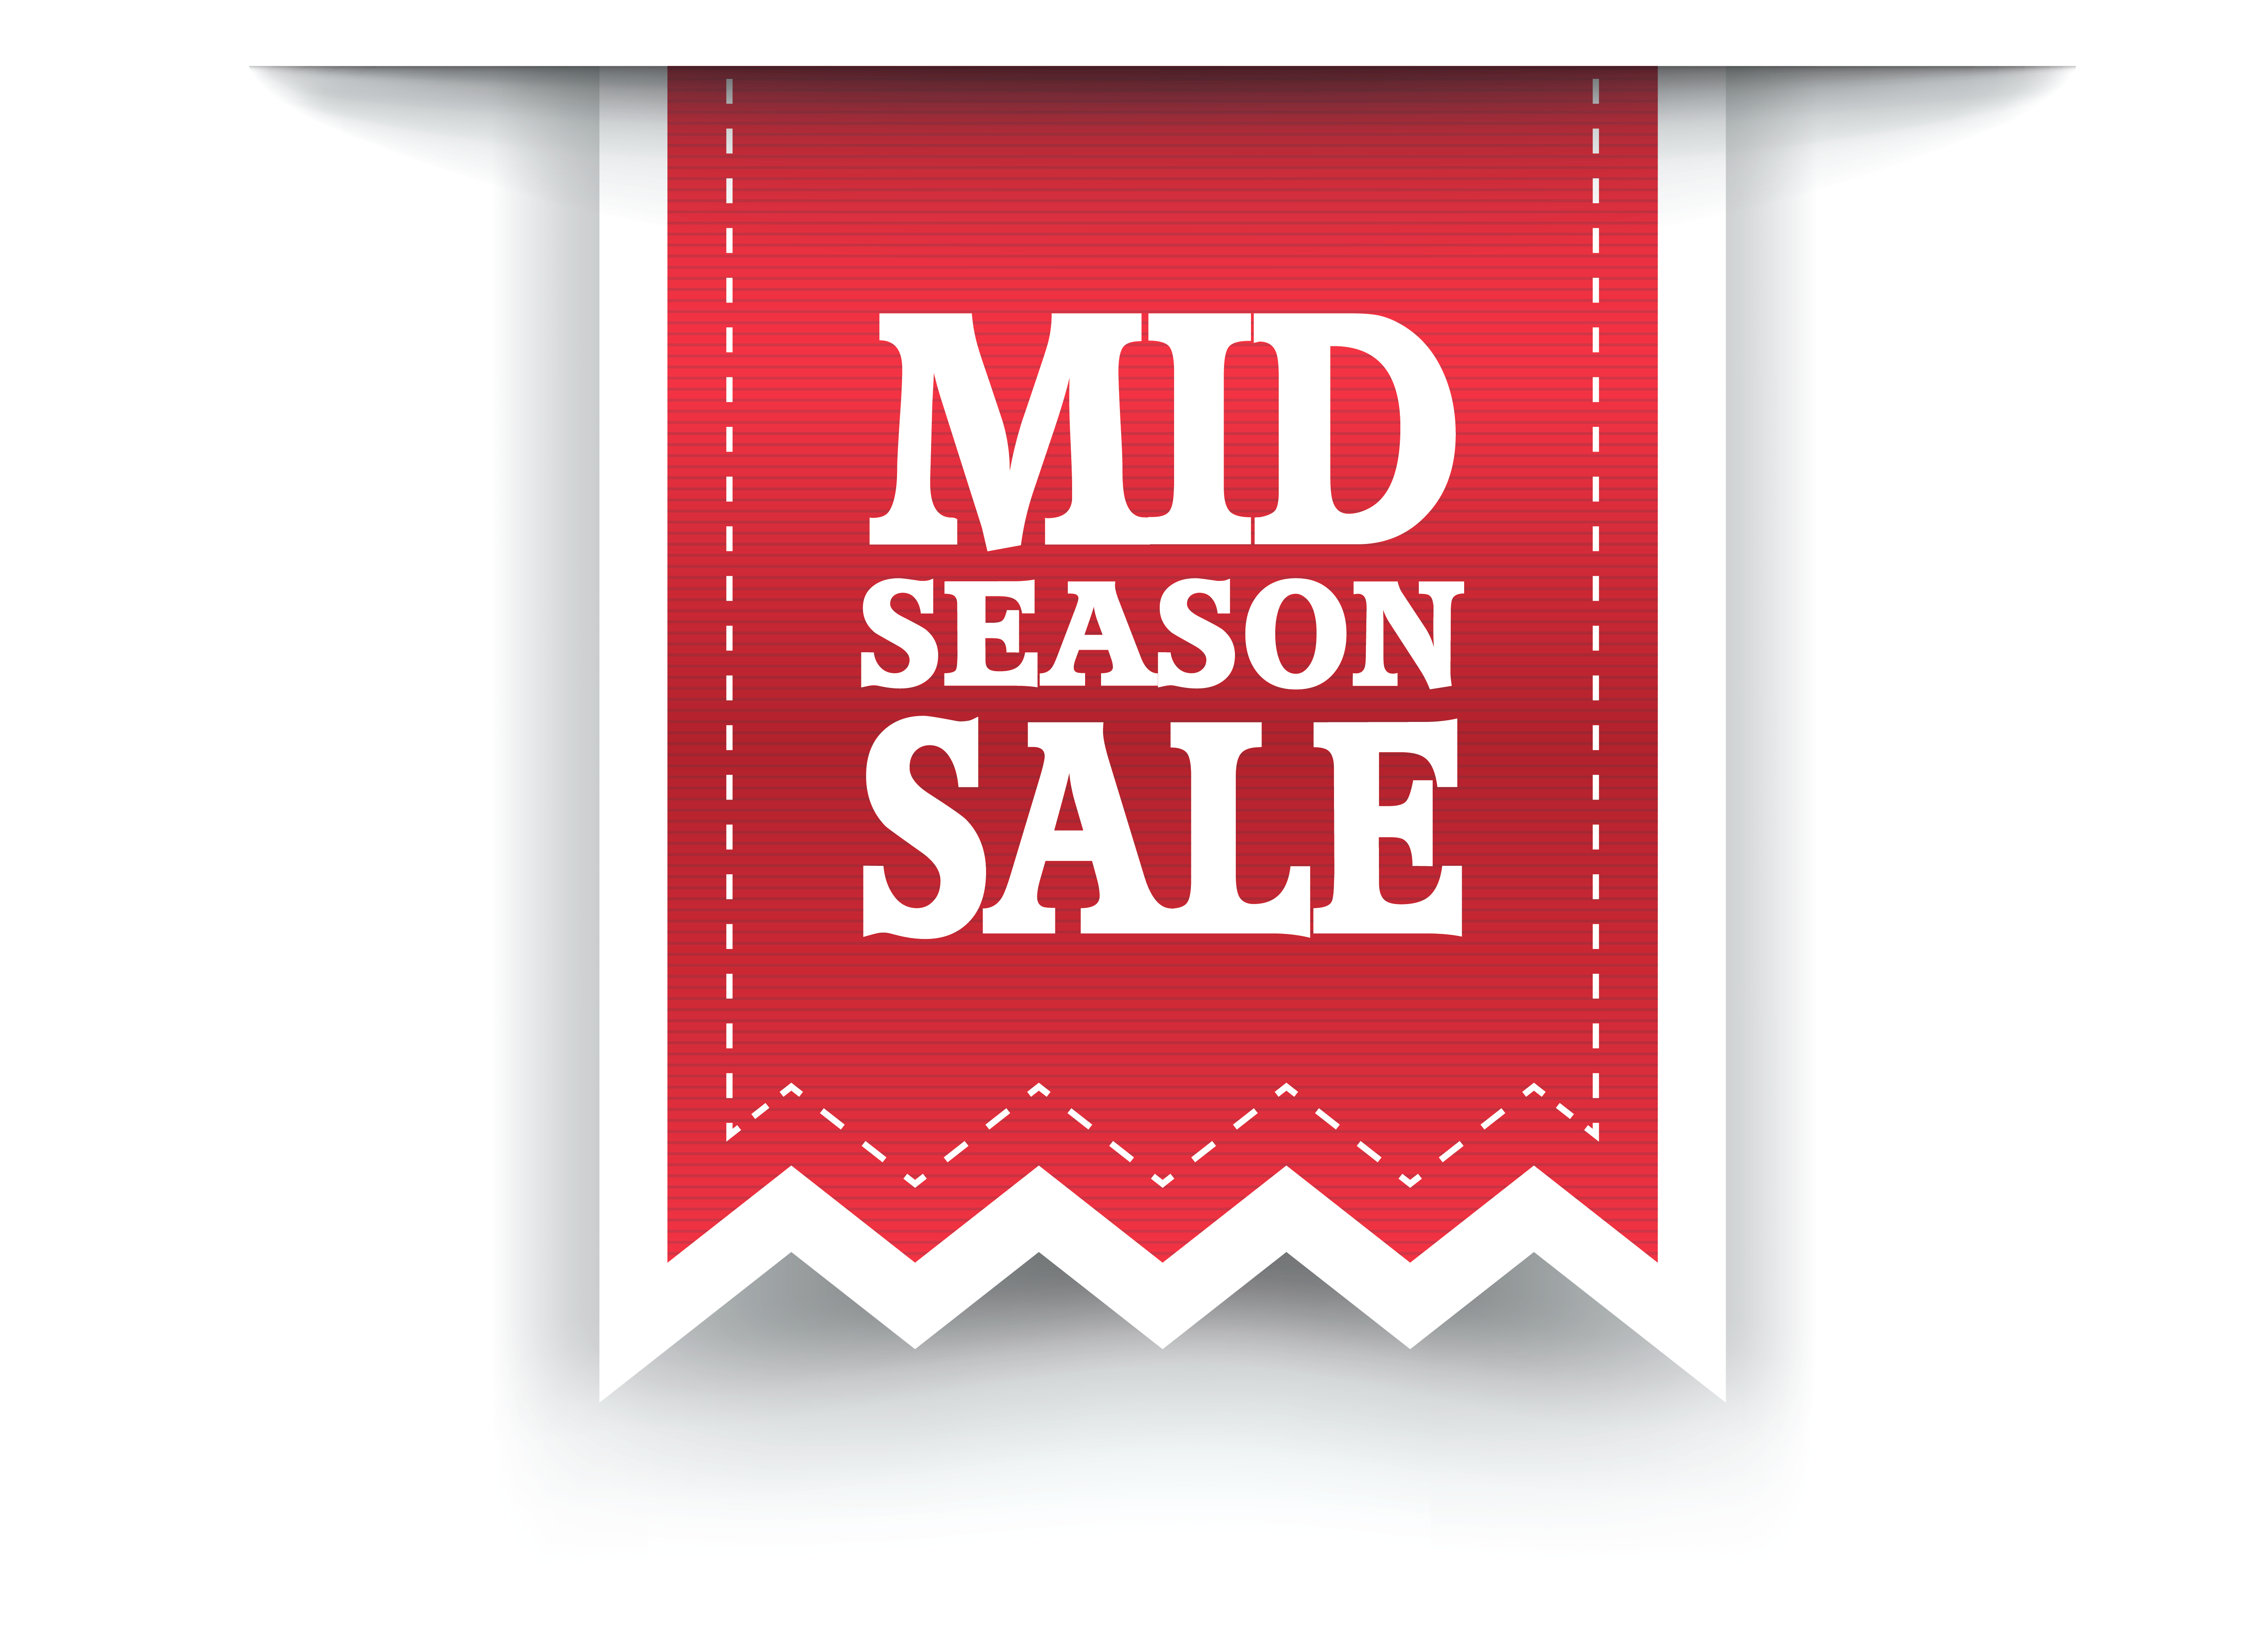 image transparent stock Middle clipart protocol. Red mid season sale.